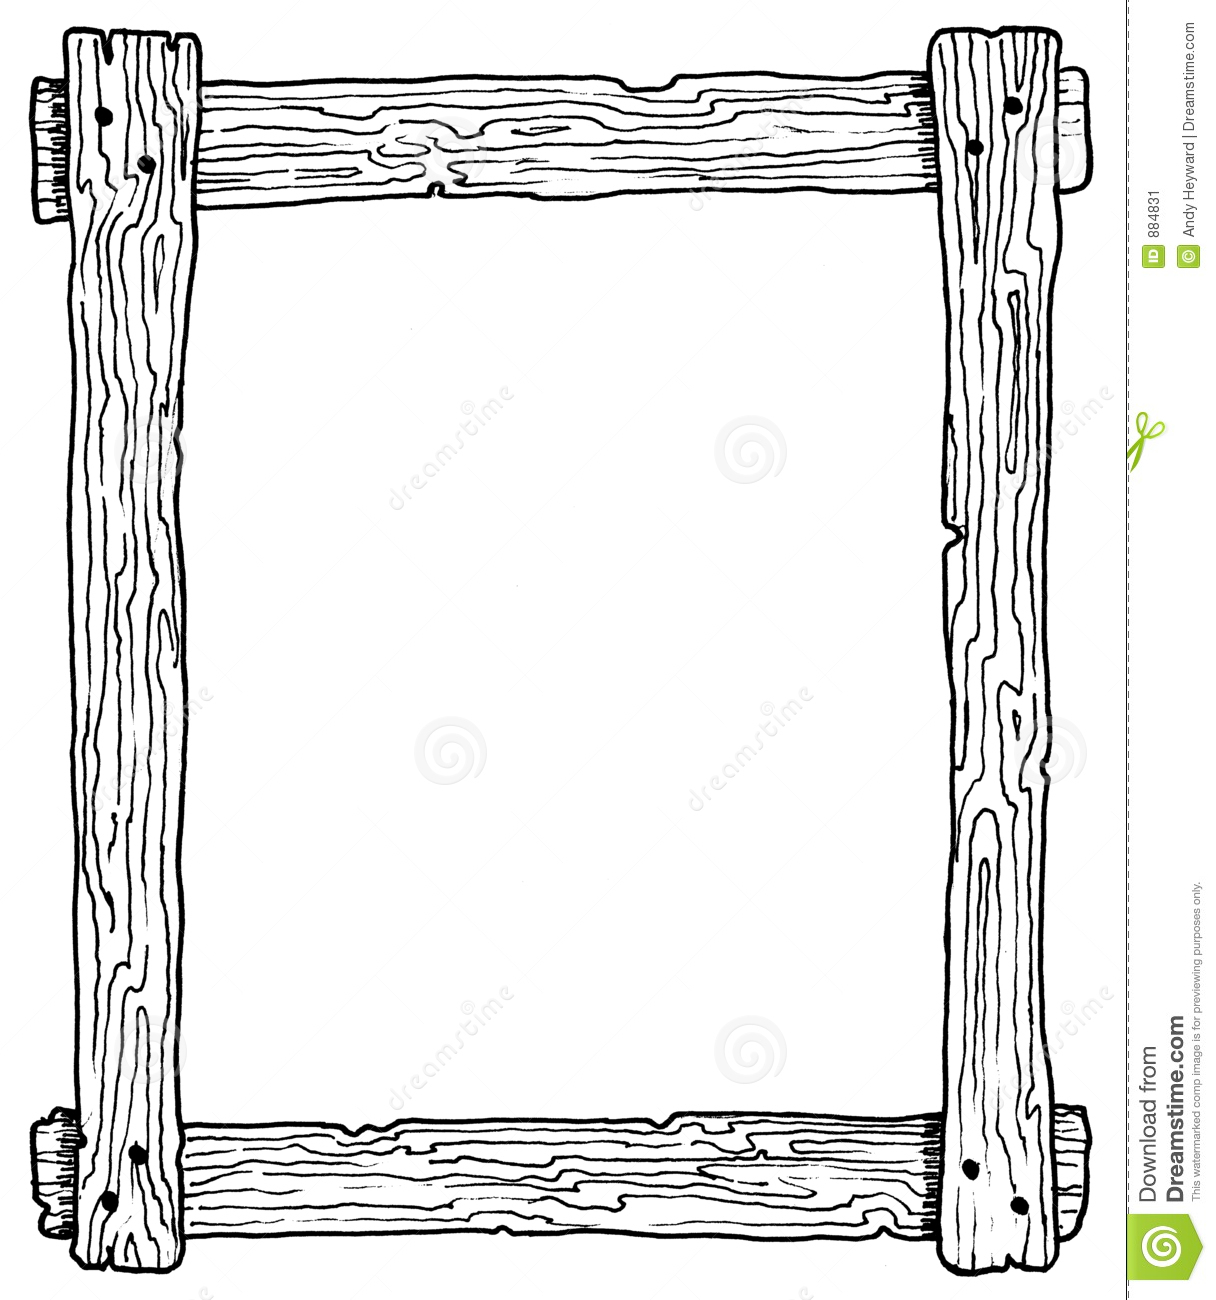 Border . Boarder clipart wood